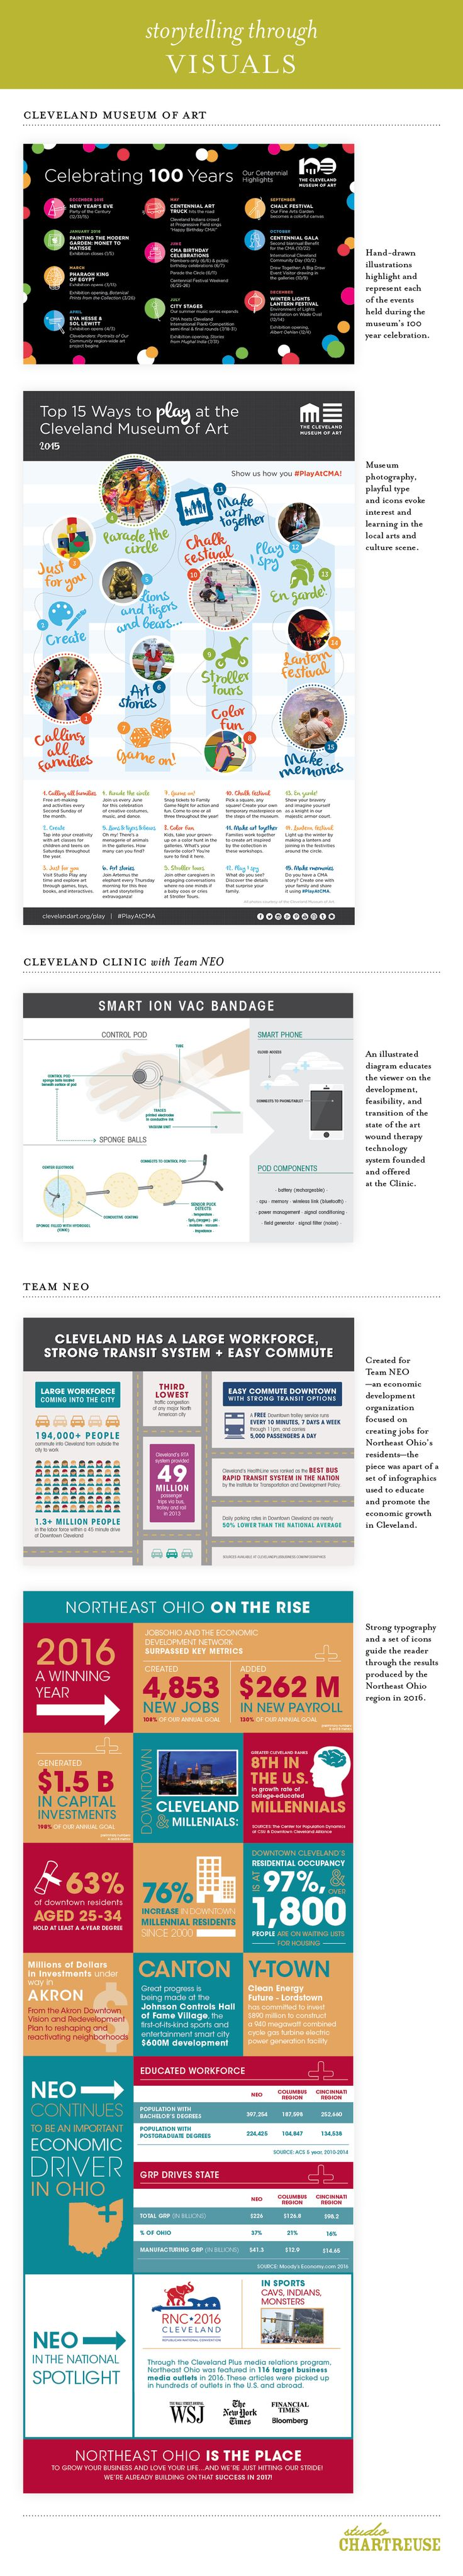 Storytelling through visuals: see how infographics can be used to tell your brand story through examples with the Cleveland Museum of Art, the Cleveland Clinic, and more! By studio Chartreuse